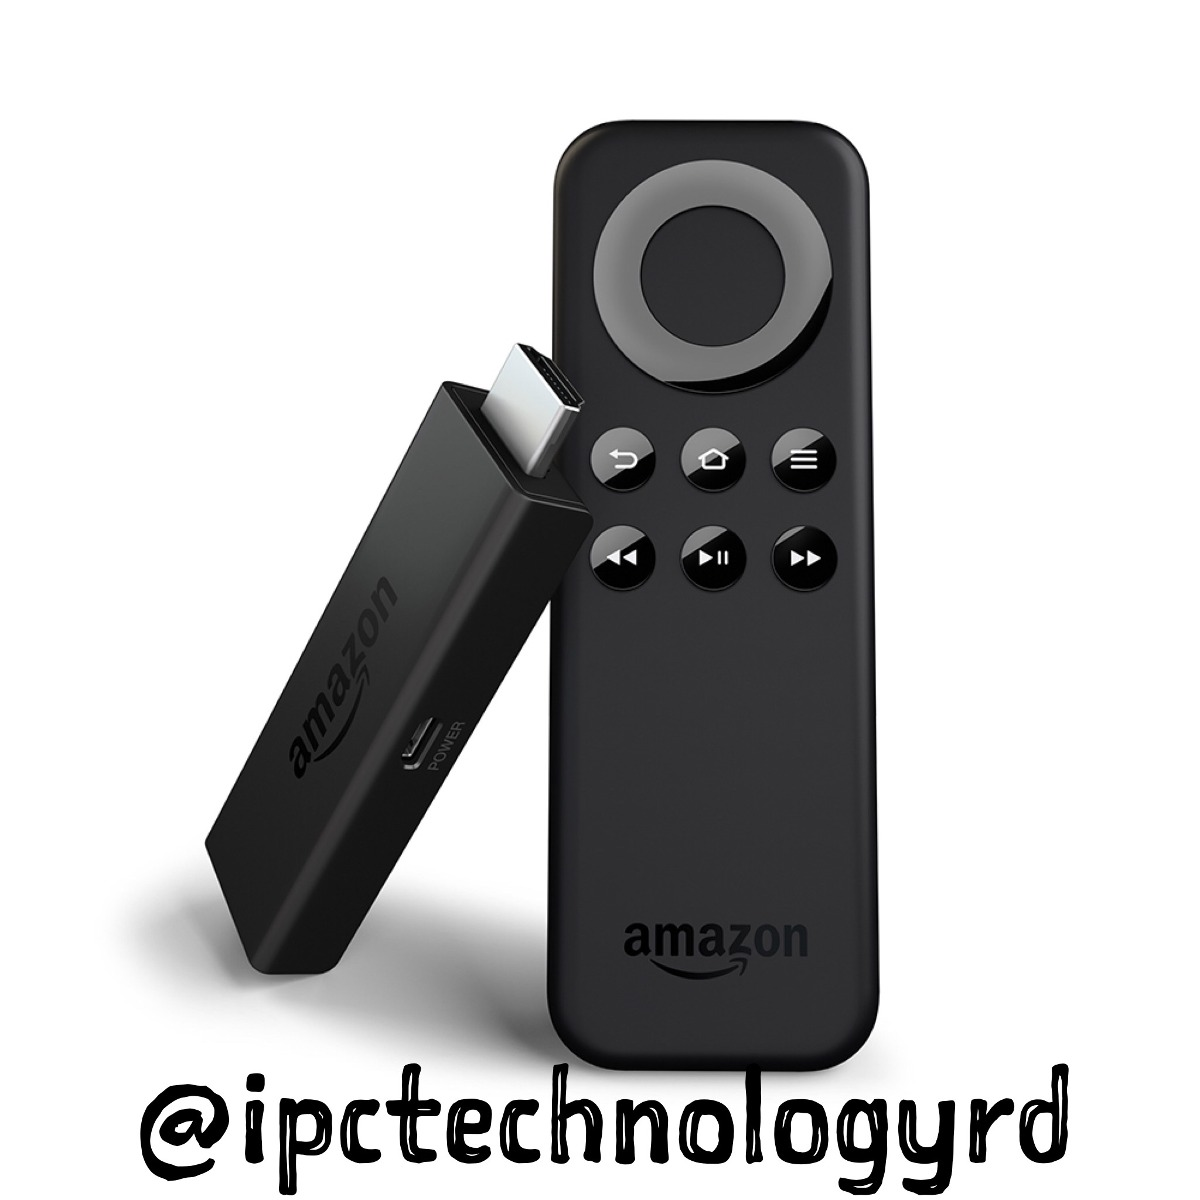 planet sport live f1 with Mrd 404867806 Amazon Fire Tv Stick Kodi Xbmc Peliculashd Y Series Gratis  Jm on Bugatti Veyron also Harriet Cass And Charlotte Green To Leave Bbc Radio 4 together with MRD 404867806 Amazon Fire Tv Stick Kodi Xbmc Peliculashd Y Series Gratis  JM further Felix Baumgartner Busca Ser El Primer Hombre En Caer Del Cielo in addition 01.